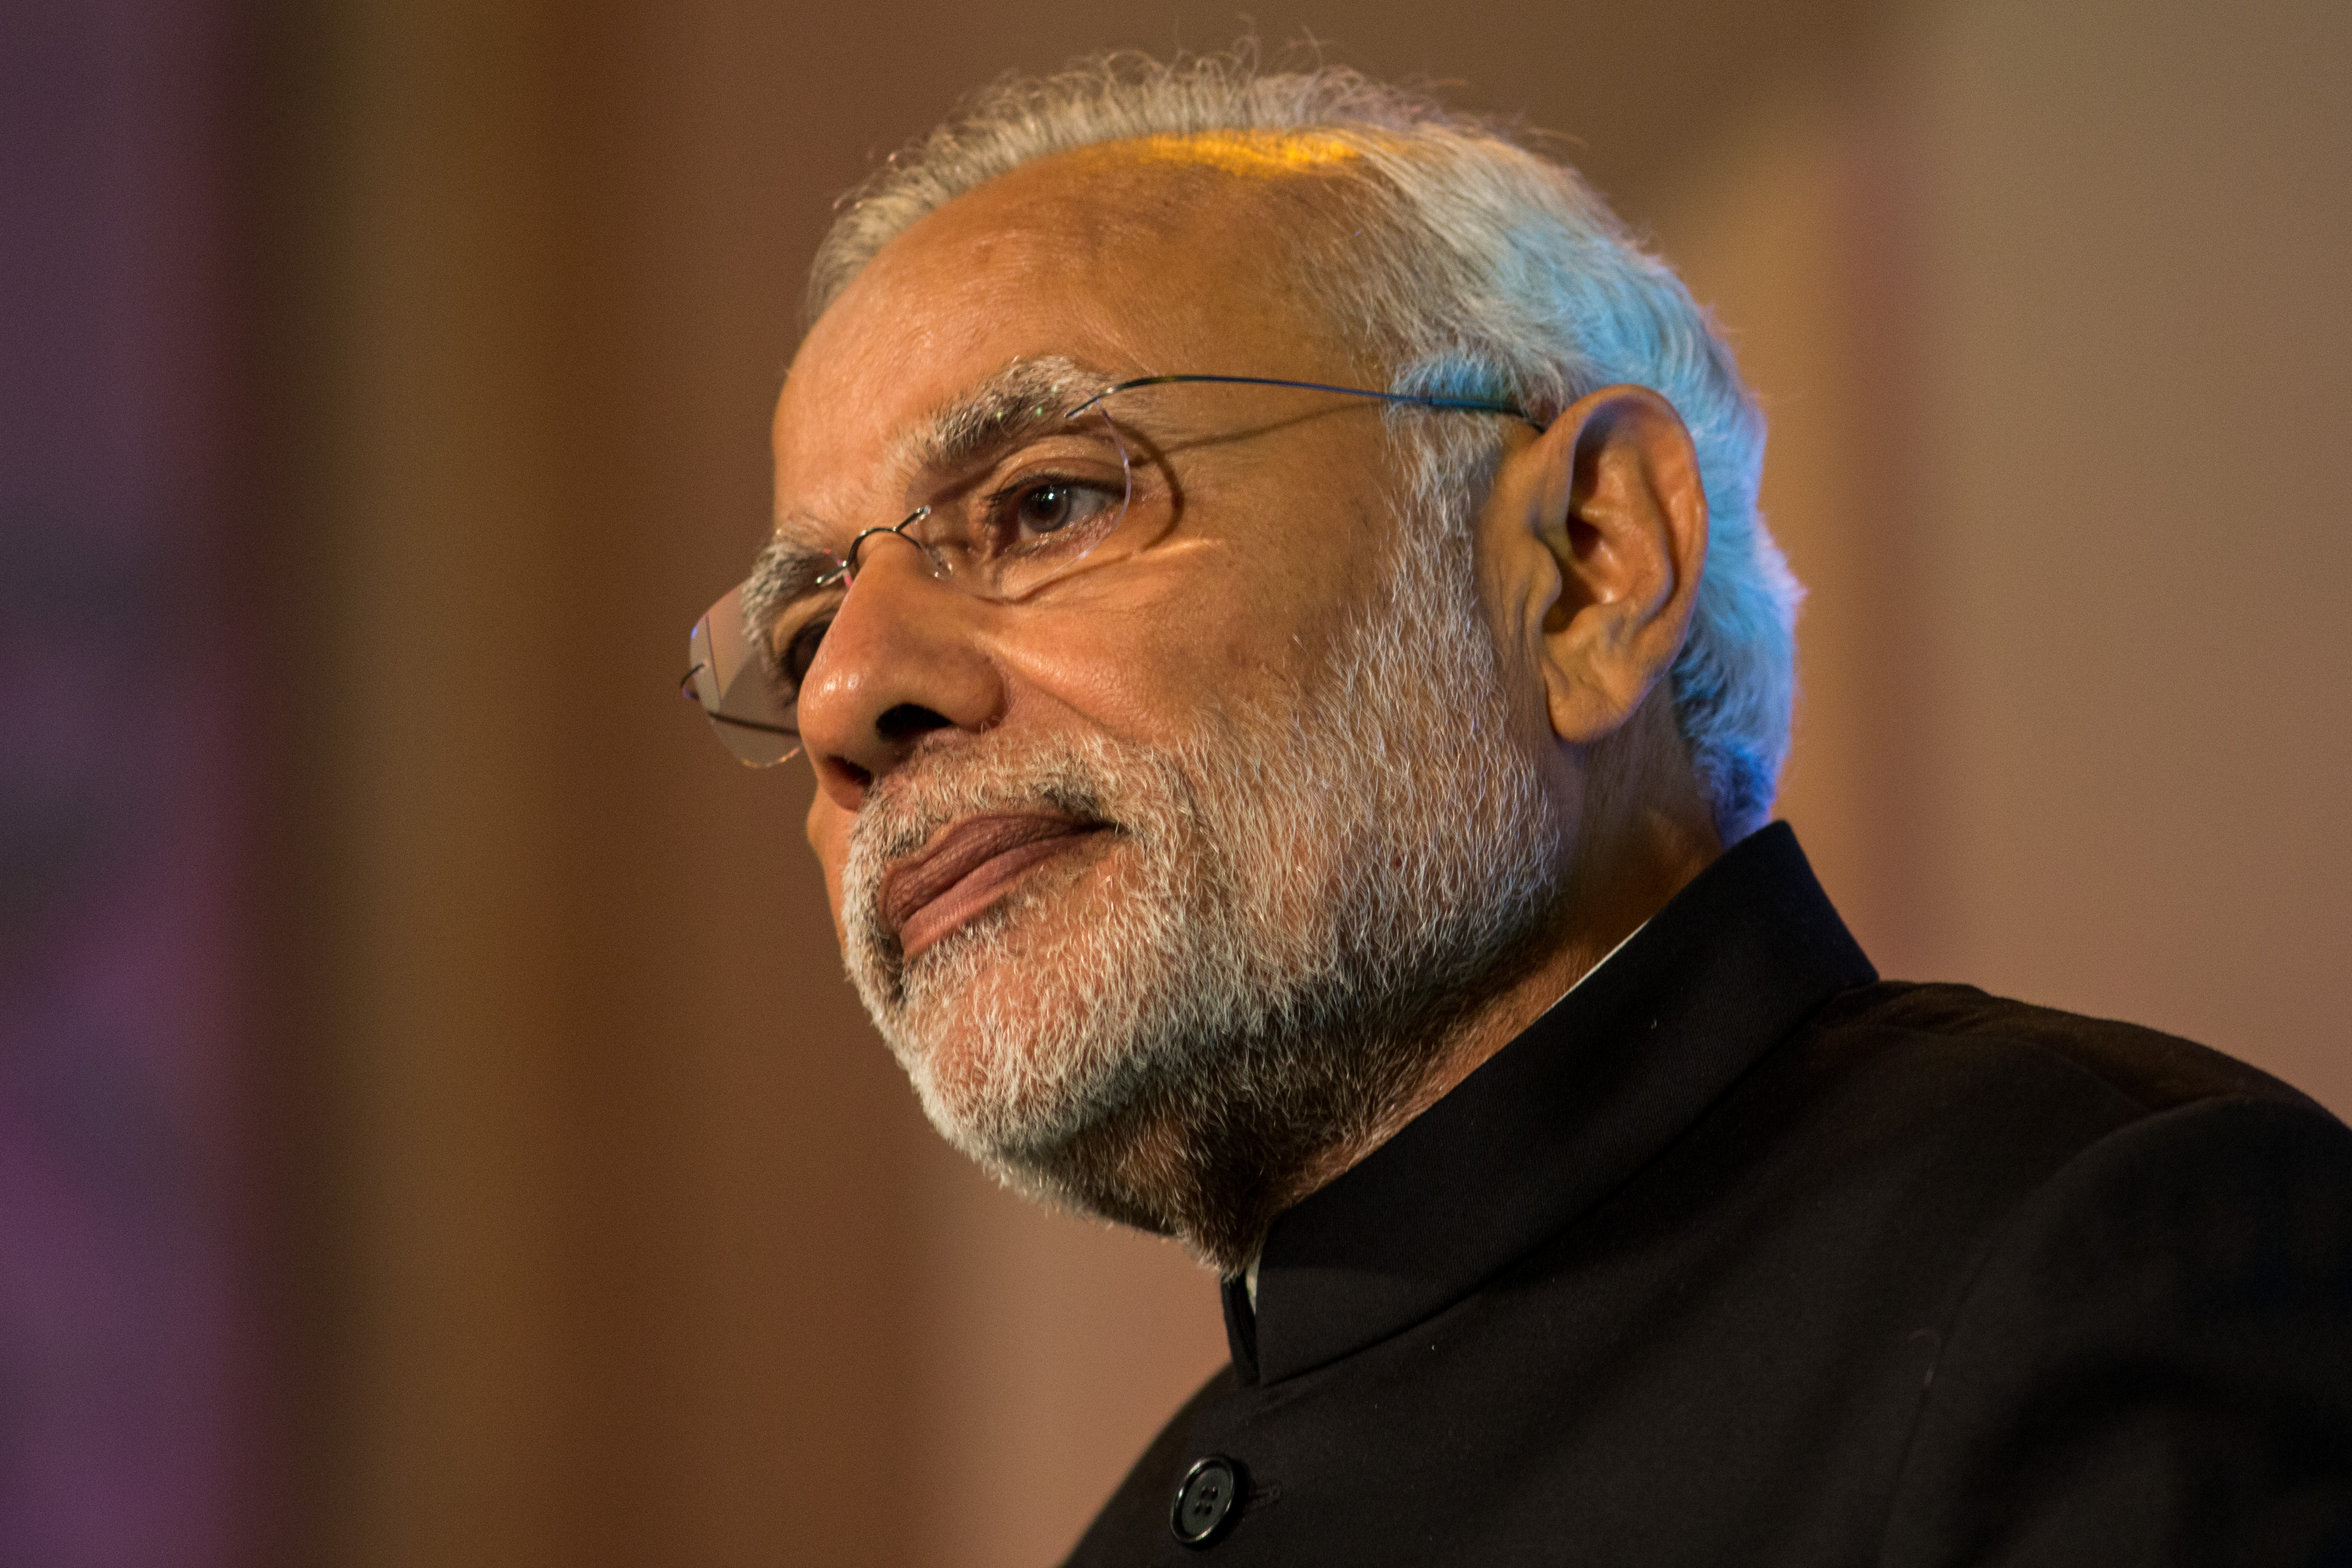 Narendra Modi addresses industry leaders at Guildhall, in London, on Nov. 12, 2015.